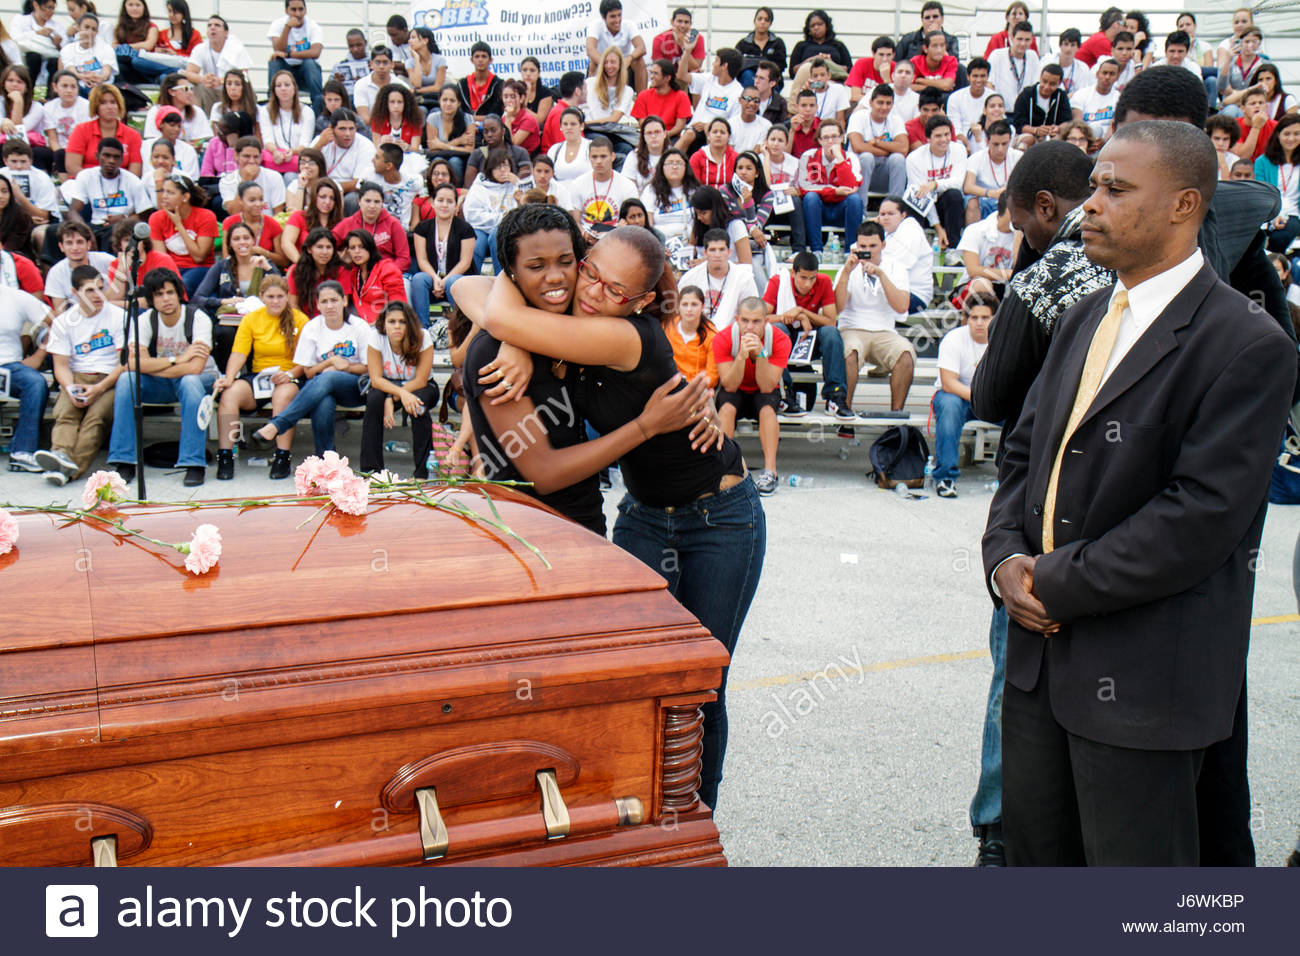 Miami Beach Miami Florida Beach High School Cheat the Reaper DUI simulated automobile accident drinking driving - Stock Image